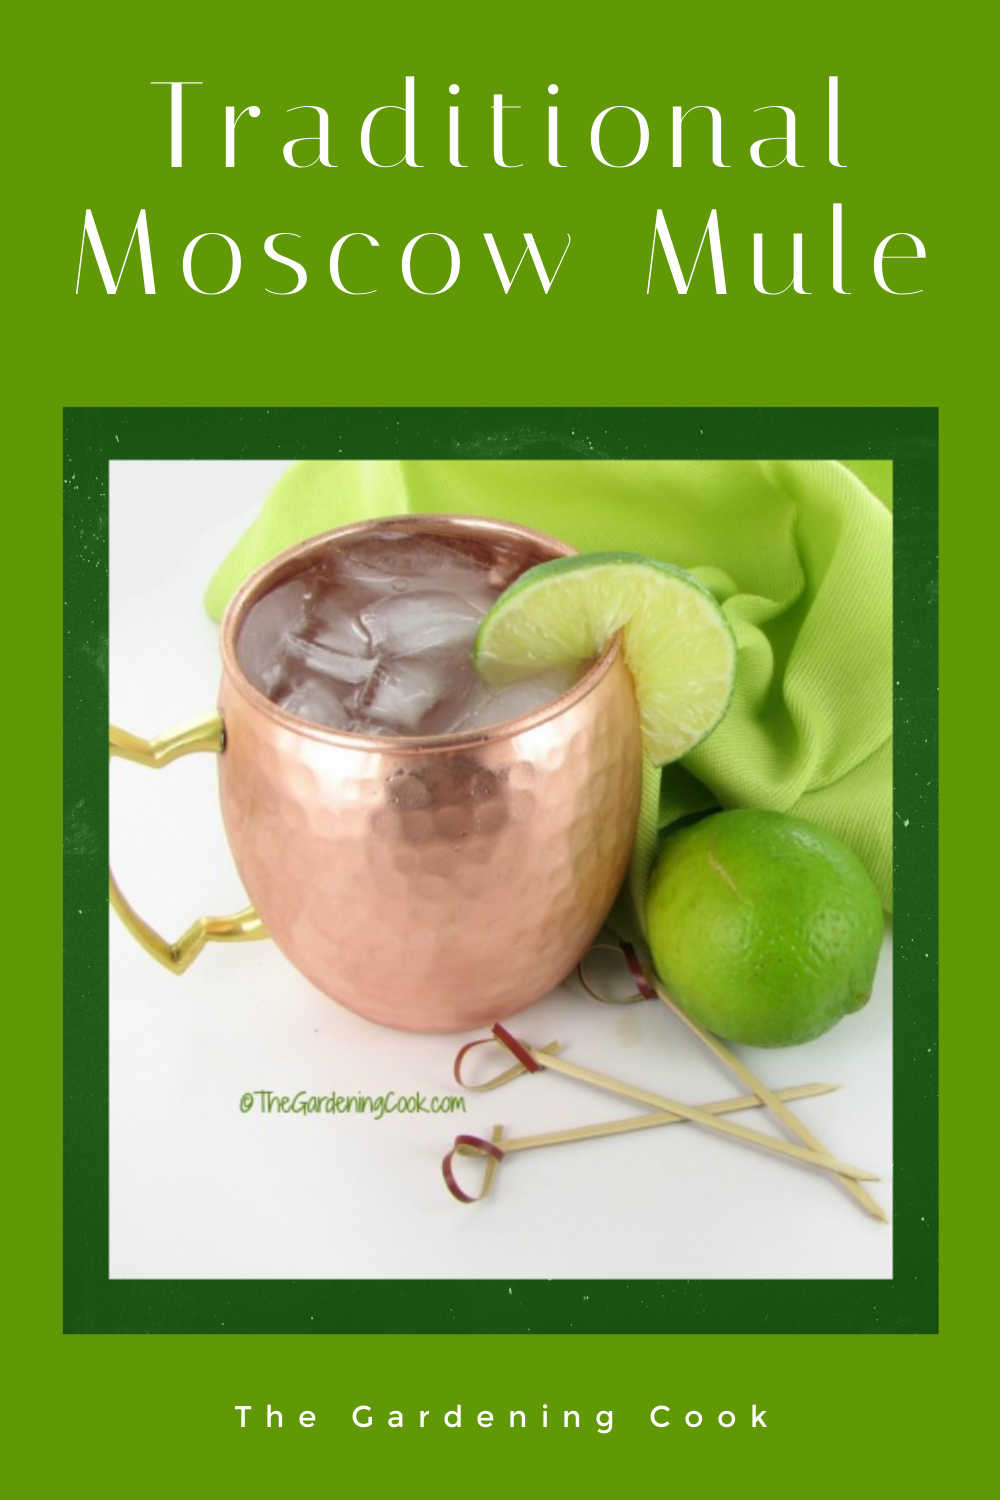 Moscow mule recipe in a copper mug with a green towel and words reading Traditional Moscow Mule.